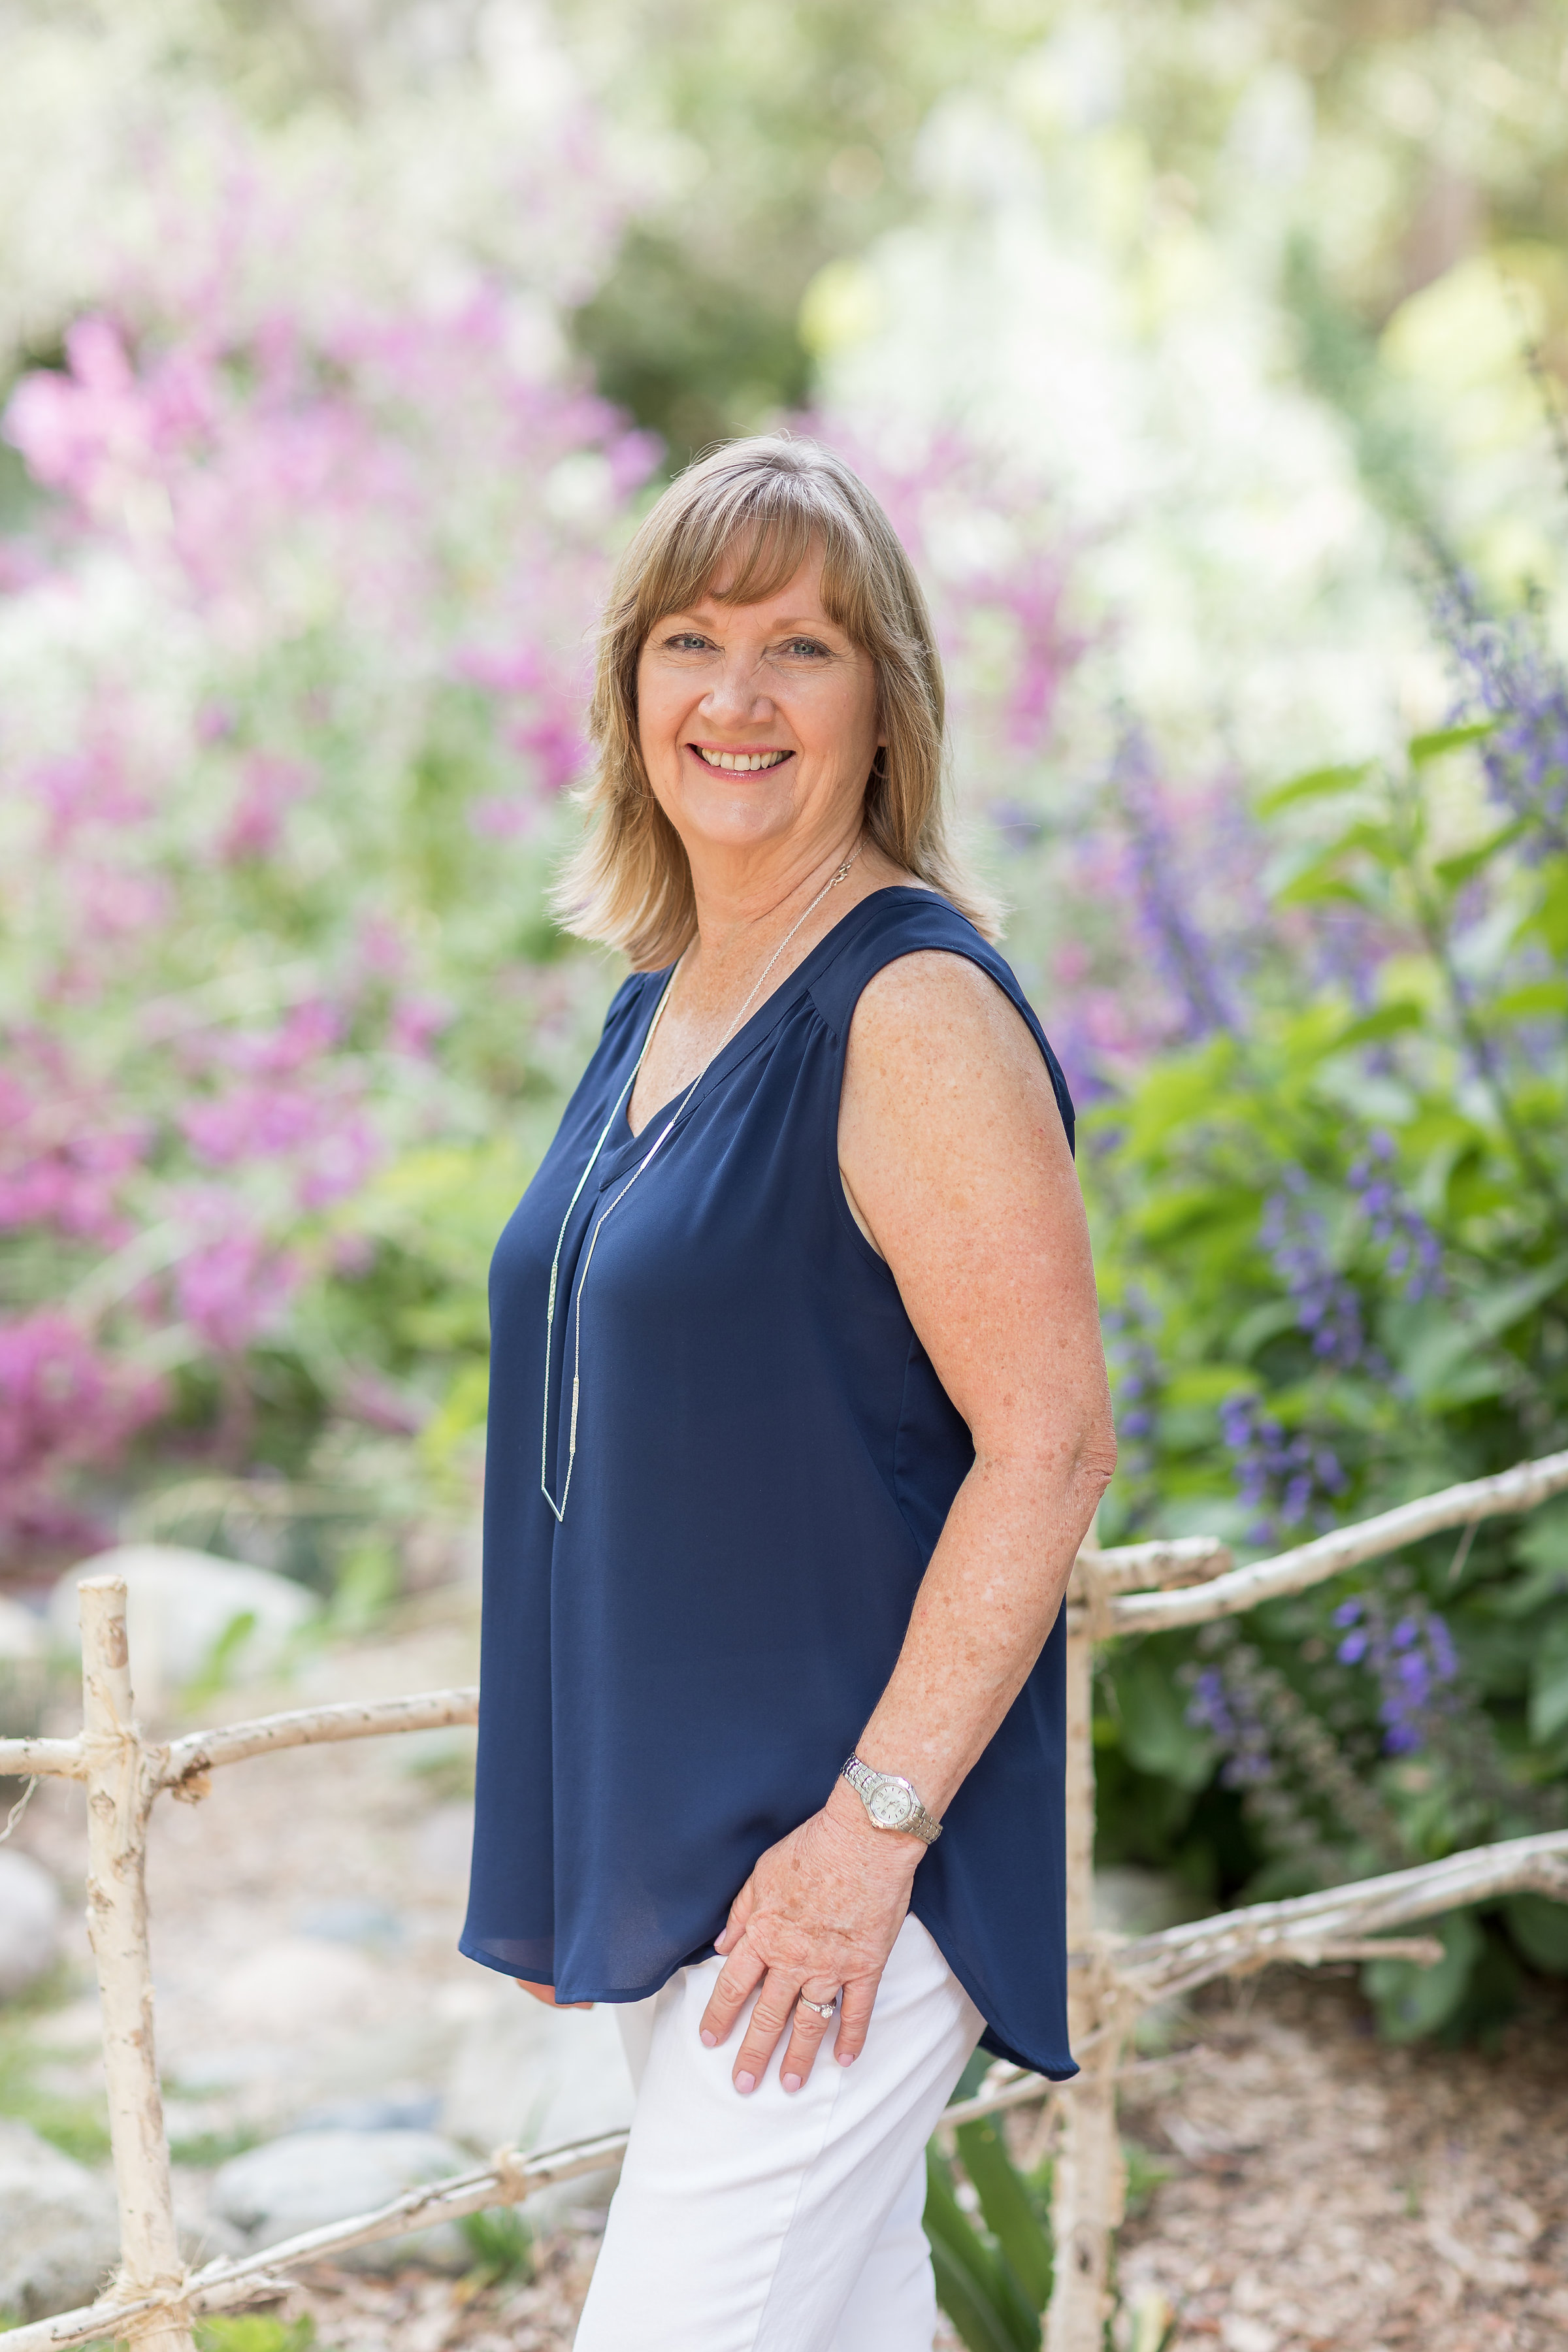 Pretty momma pic in front of an HB garden wearing a blue top and white pants.jpg